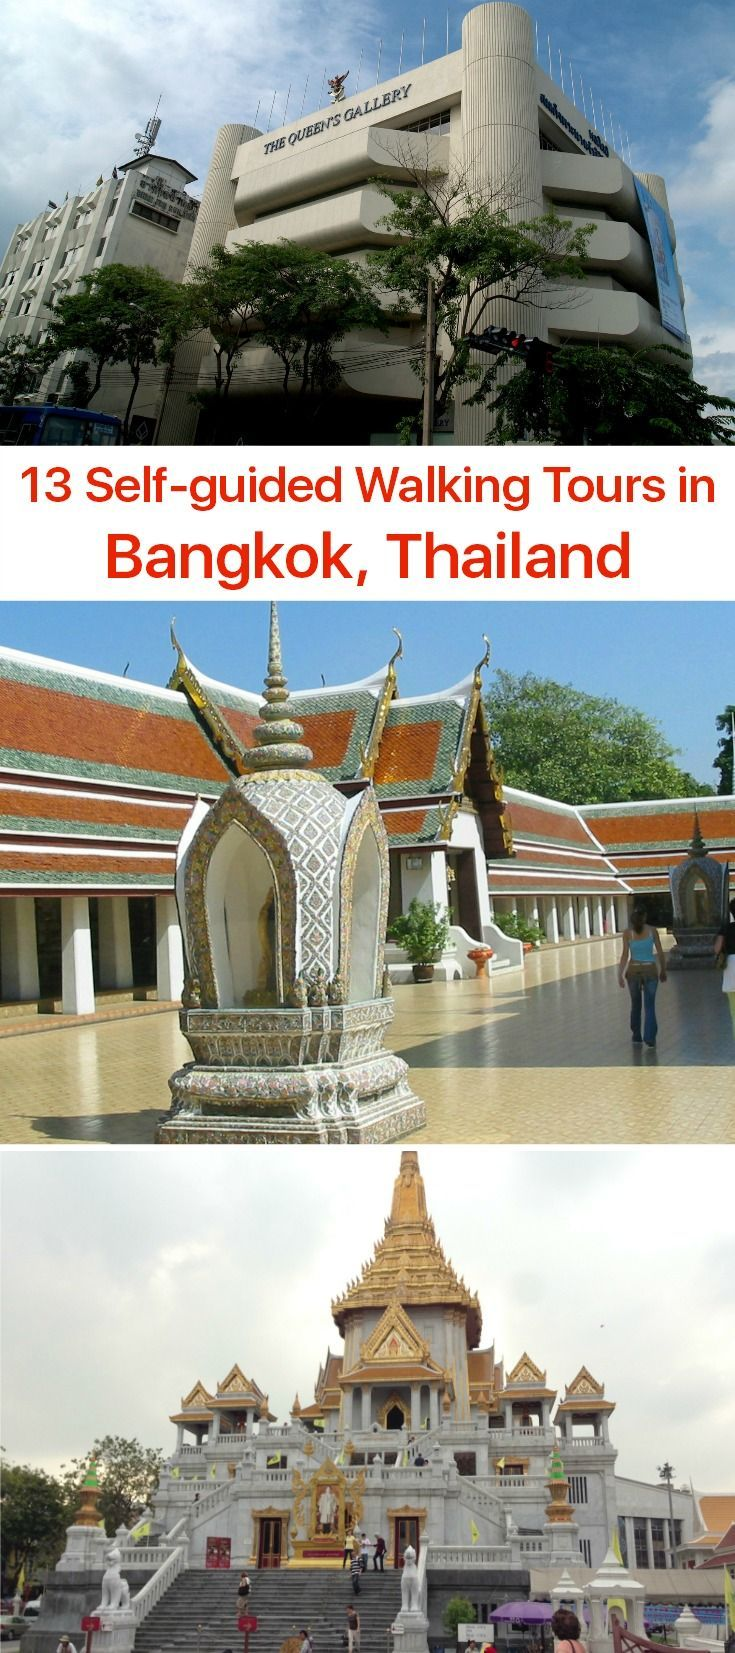 One night in Bangkok makes a hard man humble... To see whether it's true or not, millions of men and women visit the Thai capital each year - some to enlighten themselves visiting the city's many ornate shrines, others – to entertain themselves and enjoy the colorful street life.